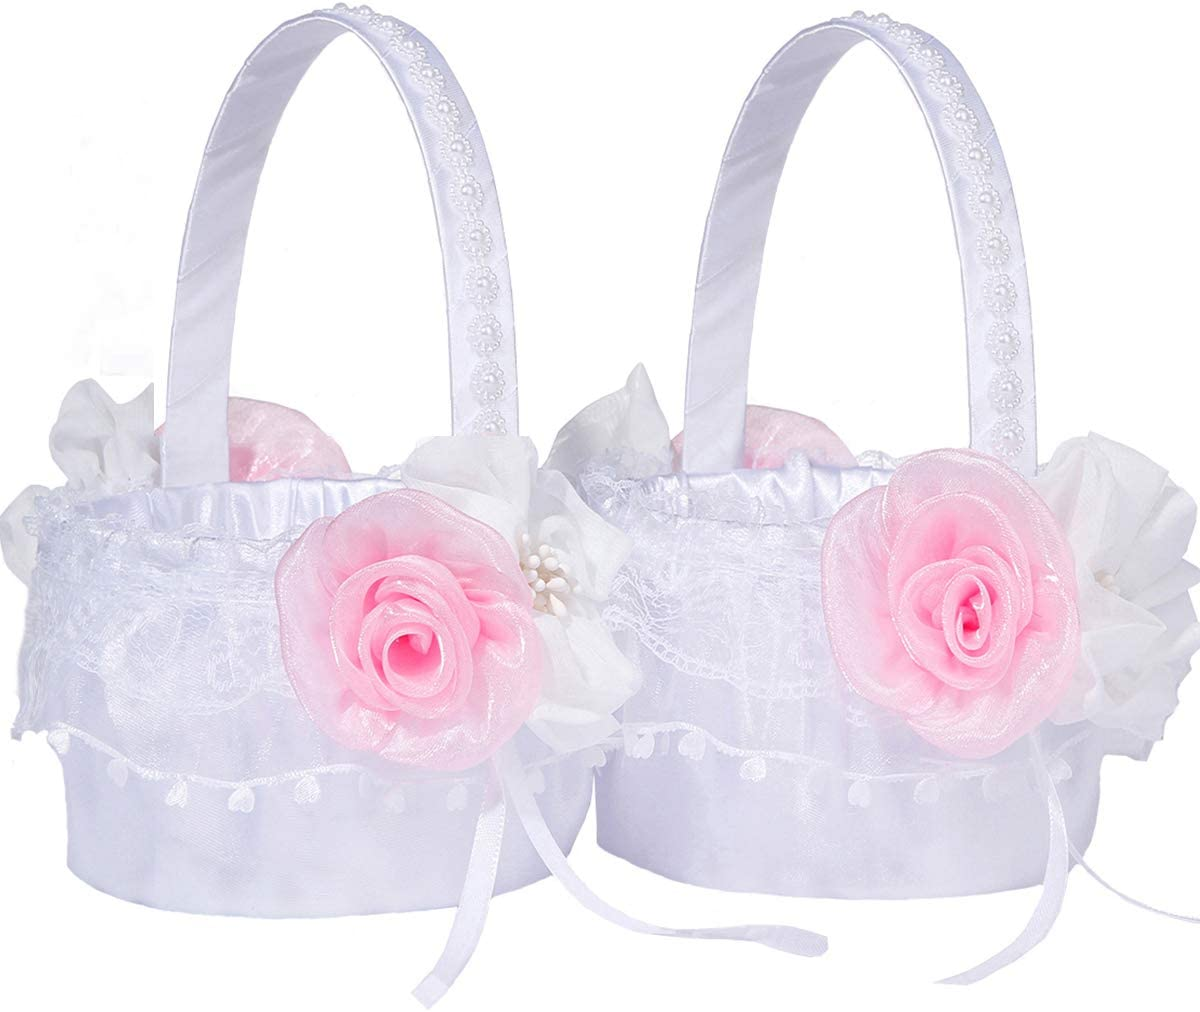 M&A Decor Flower Girl Basket for Wedding Set of 2 Elegant White Lace Basket with Pink Flowers